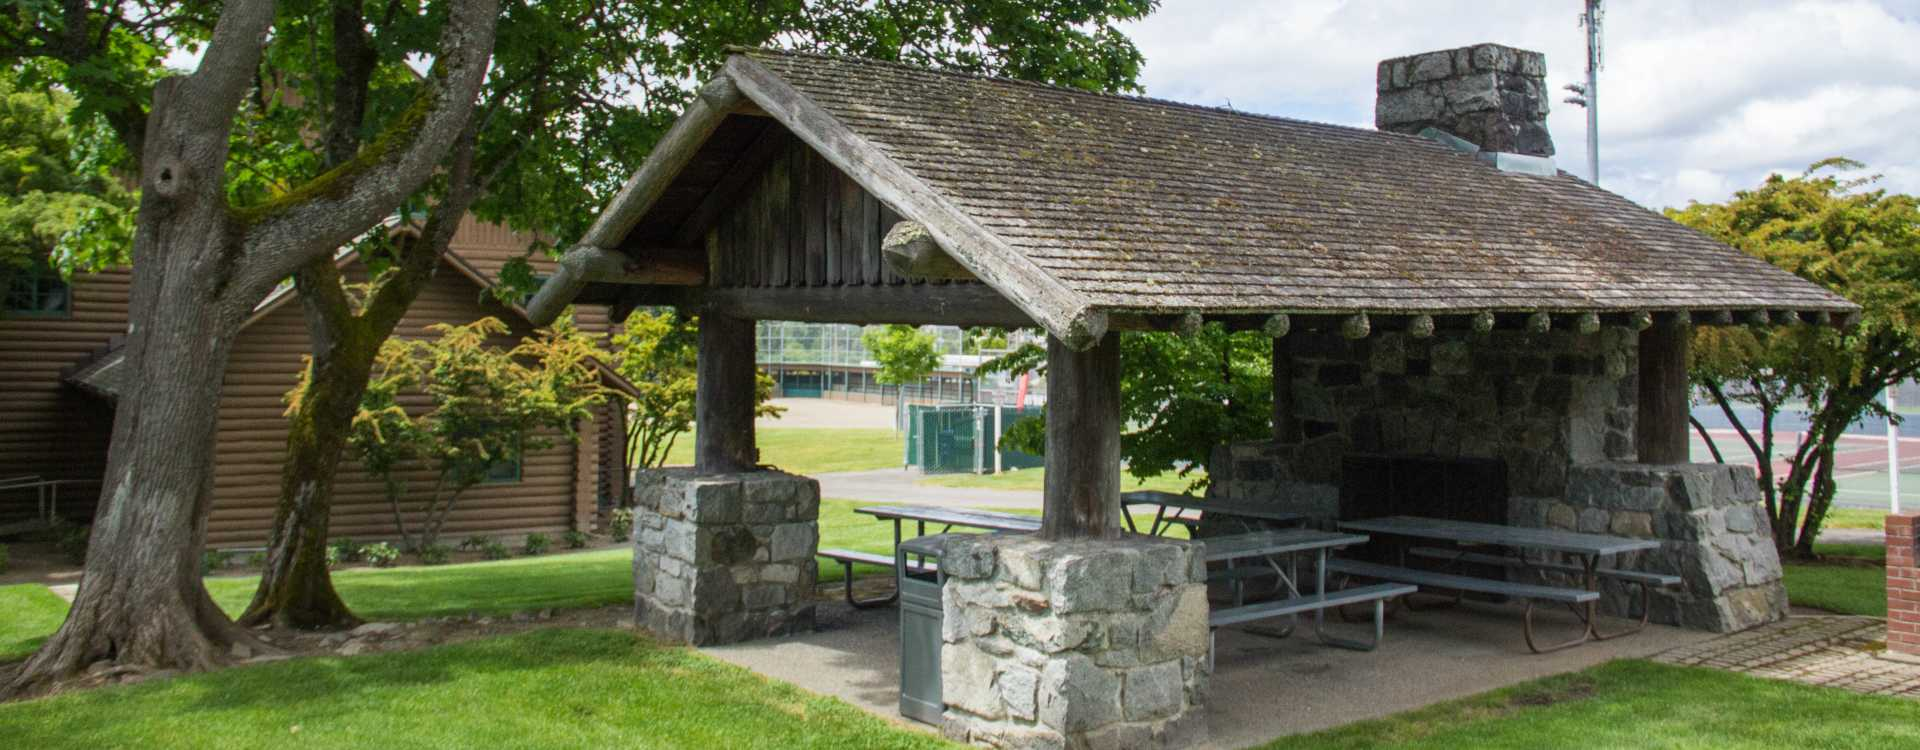 Field House Picnic Shelter